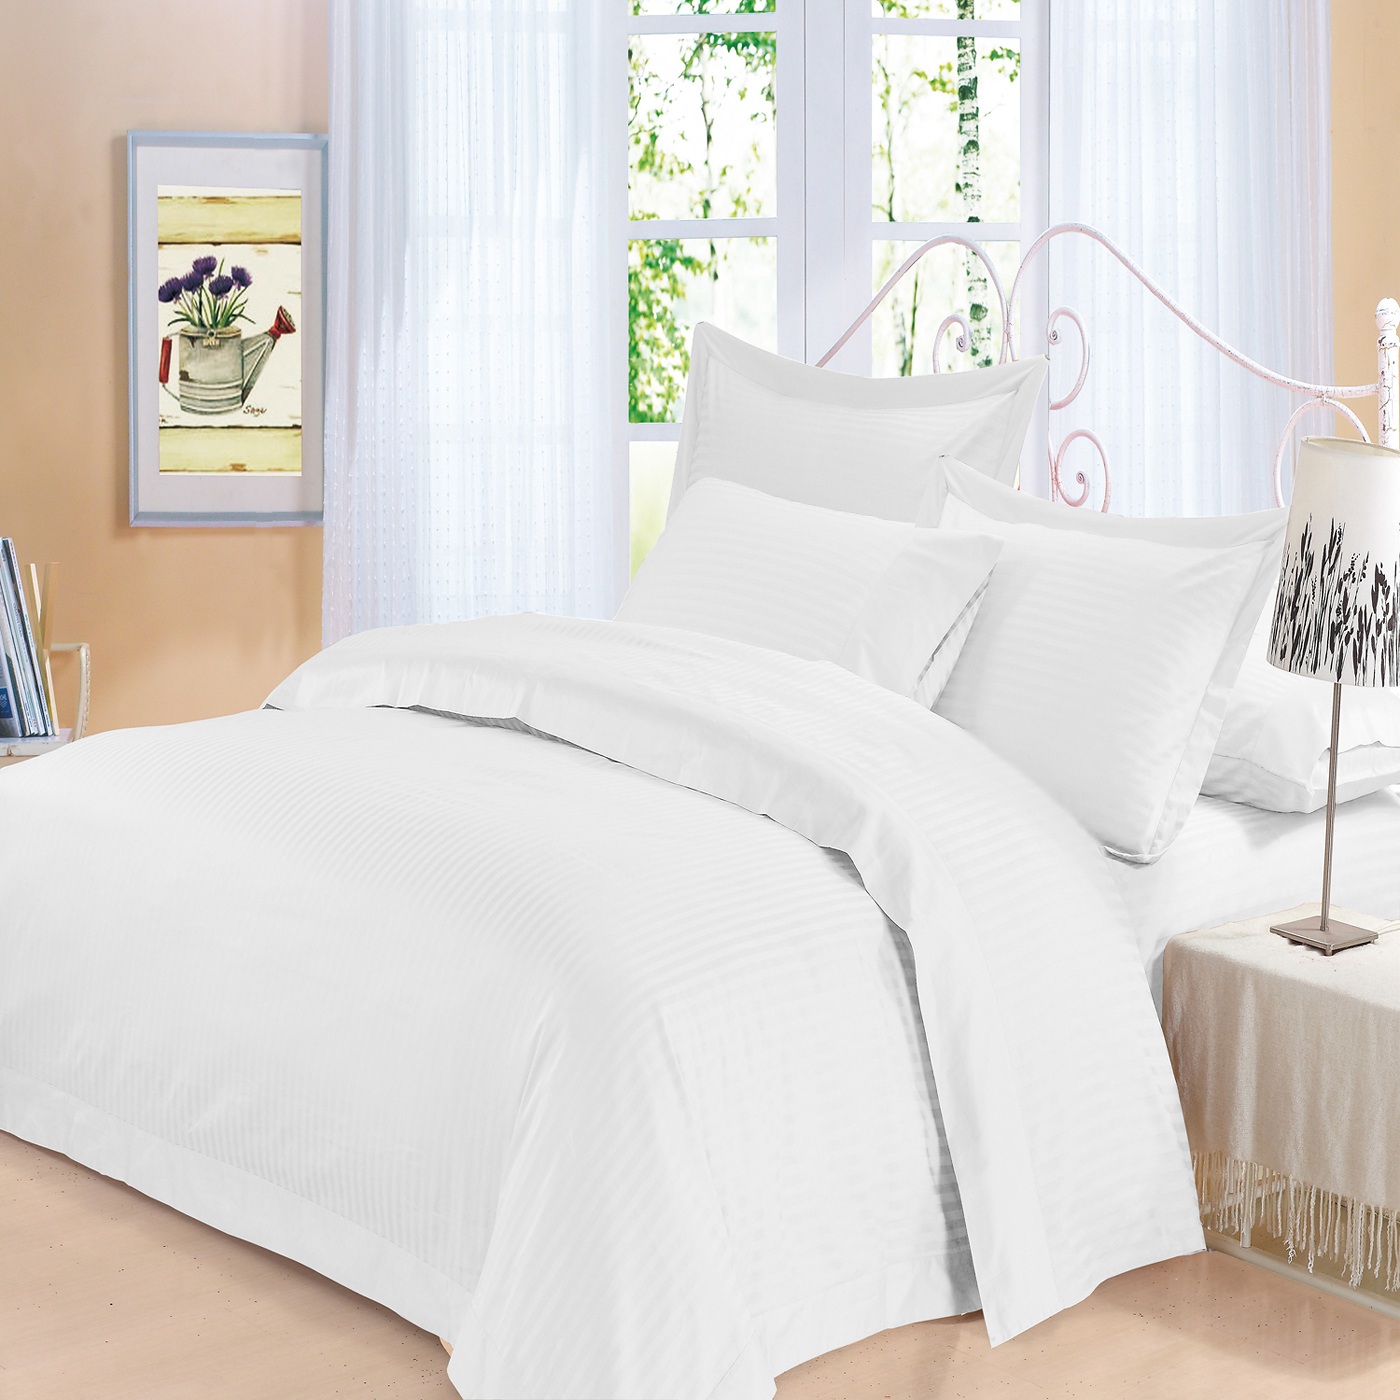 Bed Bath and Beyond Comforter Sets Full | Queen Duvet Covers | White Duvet Cover Queen